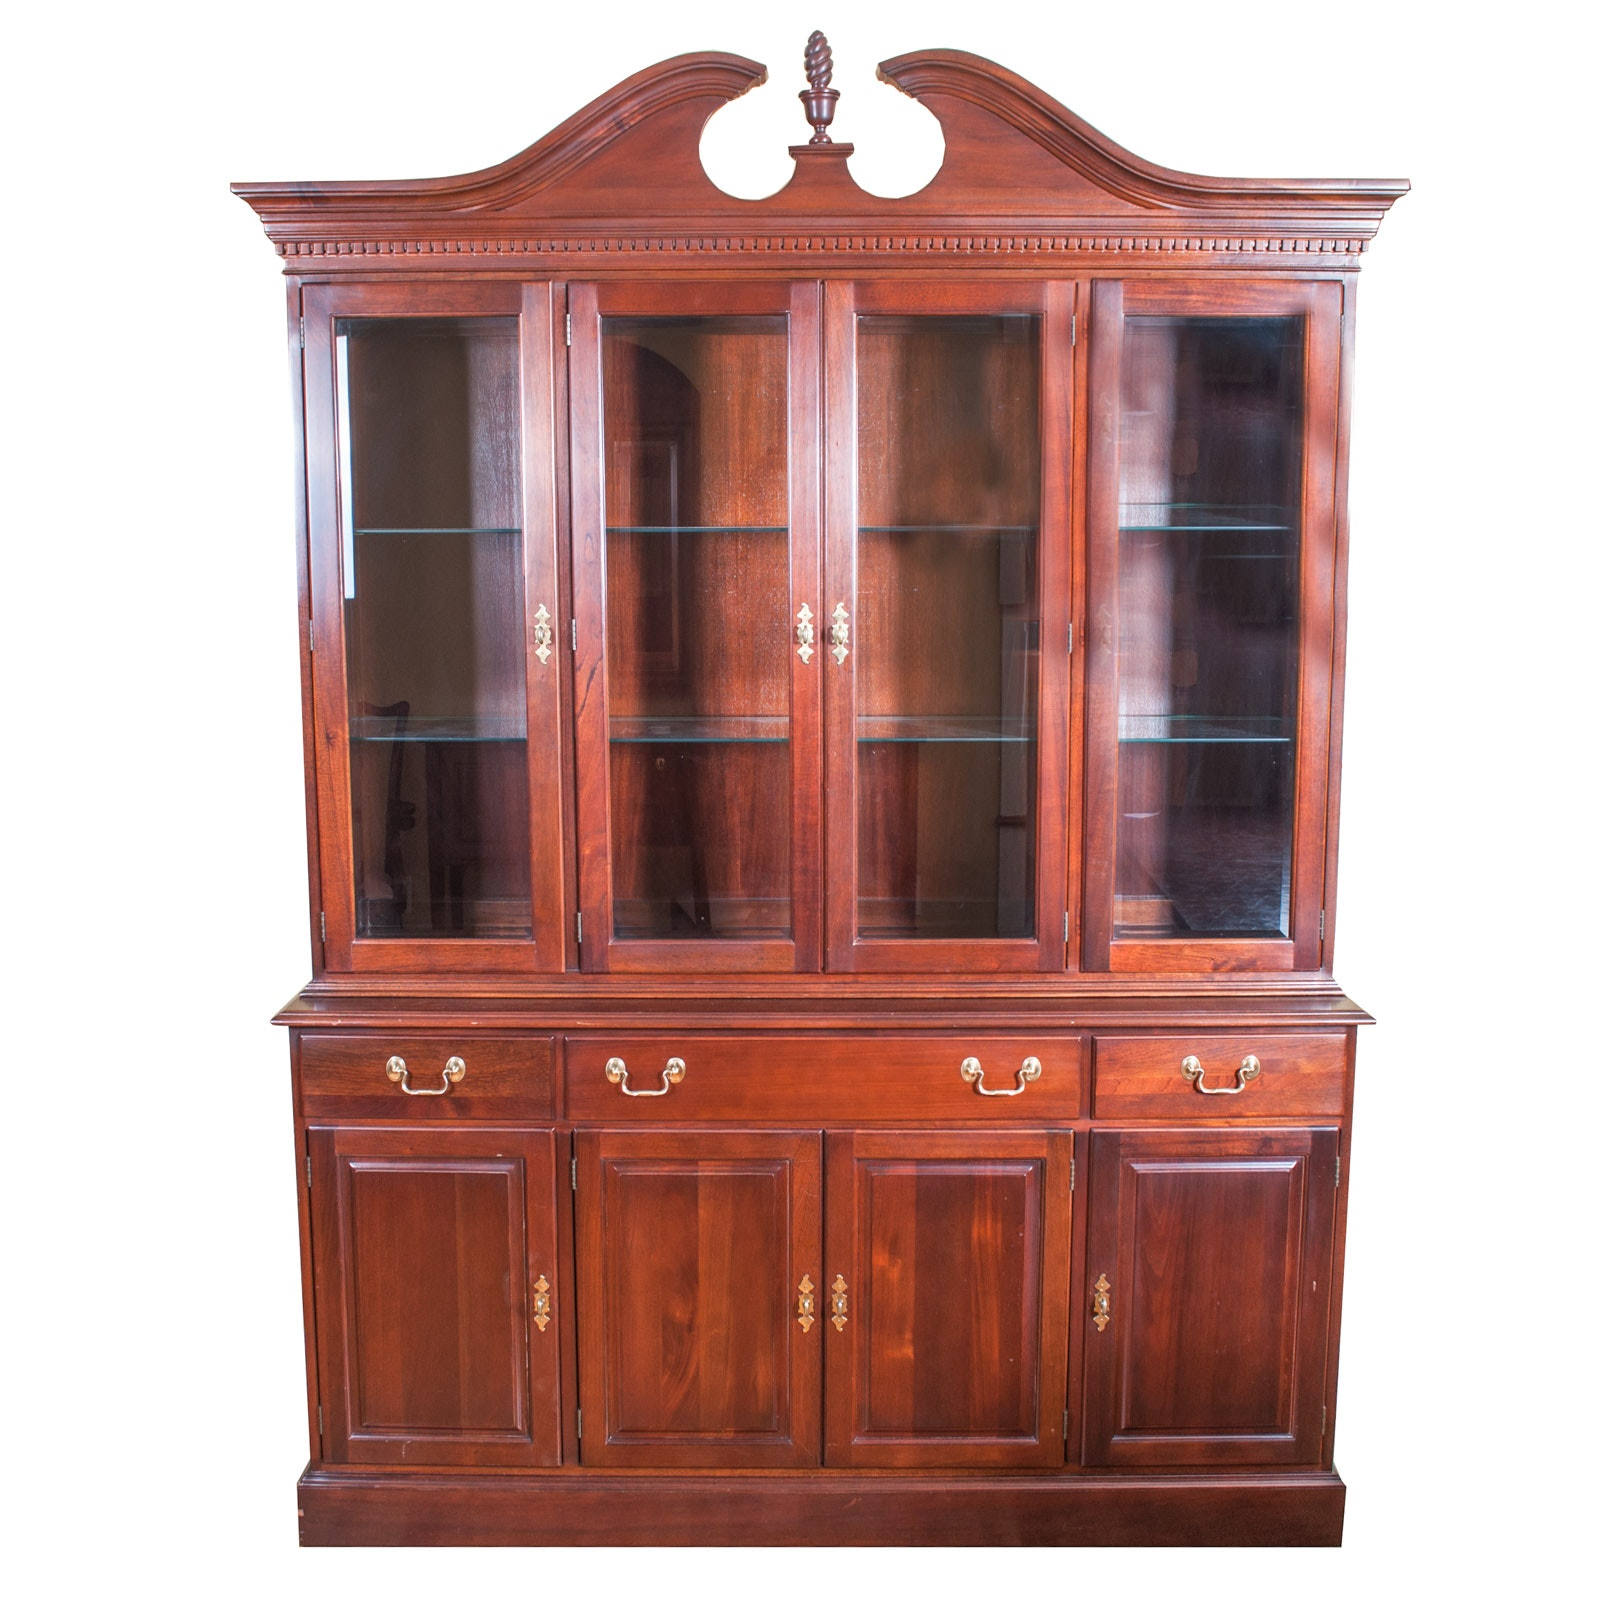 Chippendale Style Mahogany Illuminated Breakfront Cabinet by Wellington Hall